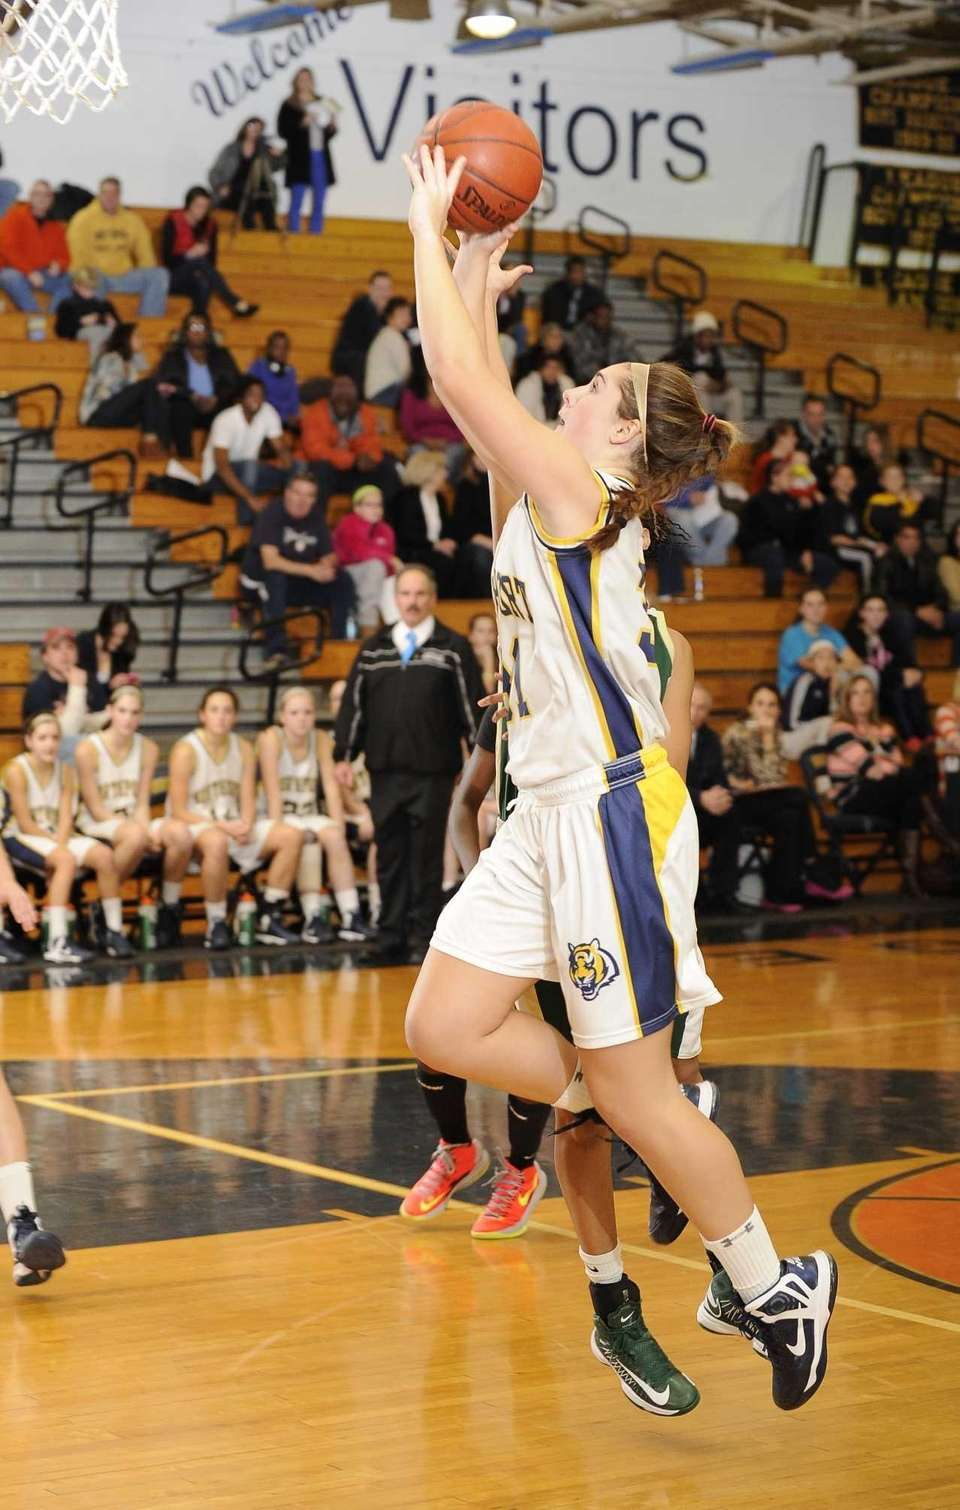 Northport forward Dorrien Van Dyke shoots a jump